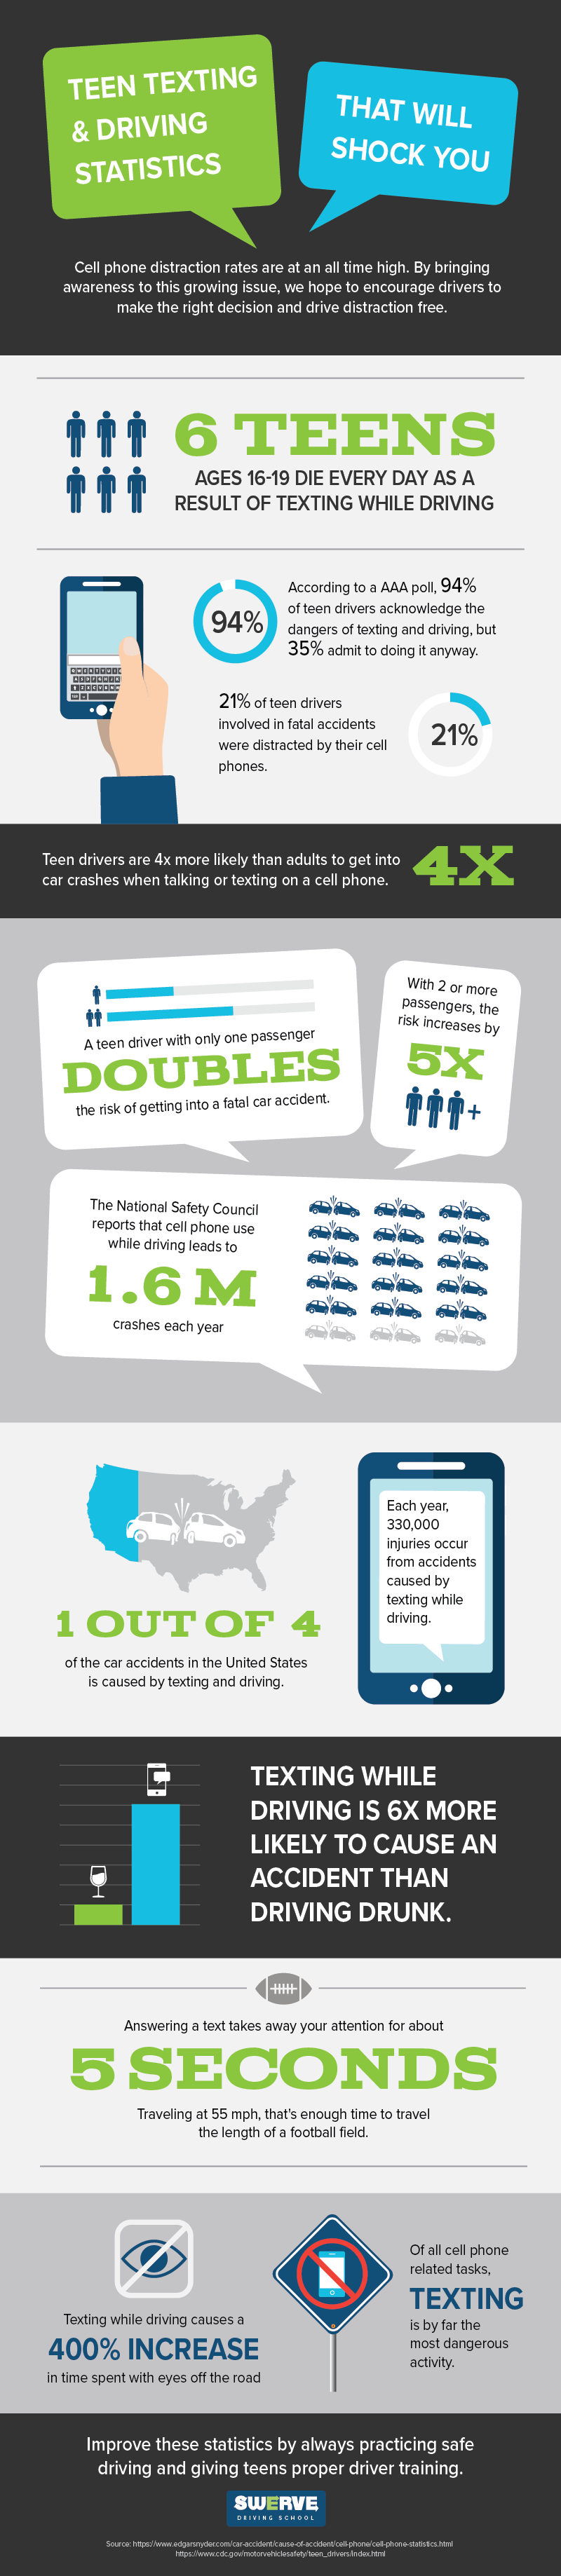 Teen Texting & Driving Statistics Infographic | Swerve Driving School